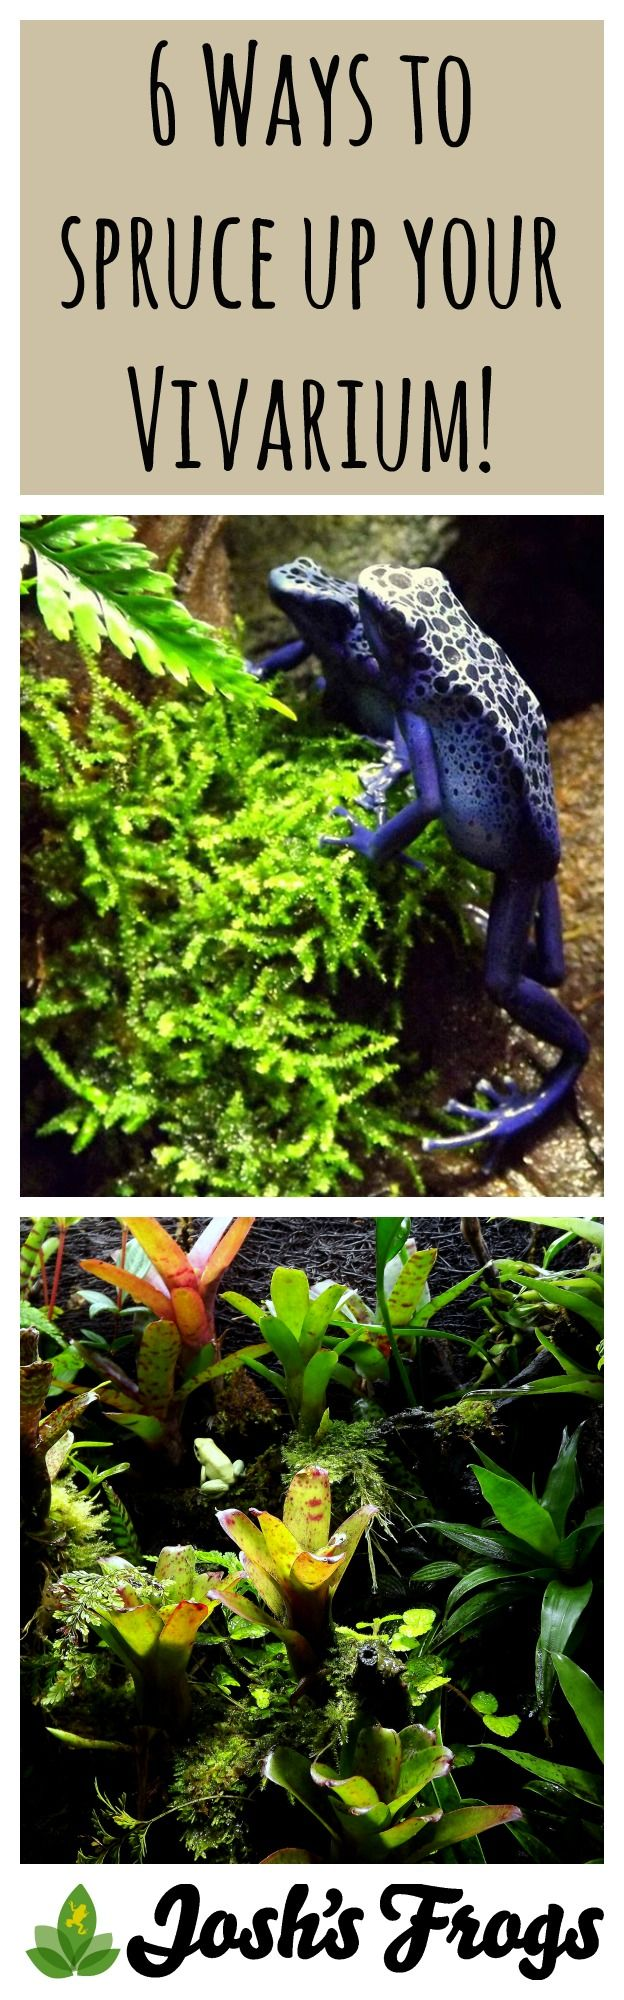 ways to spruce up your vivarium vivarium and dart frogs